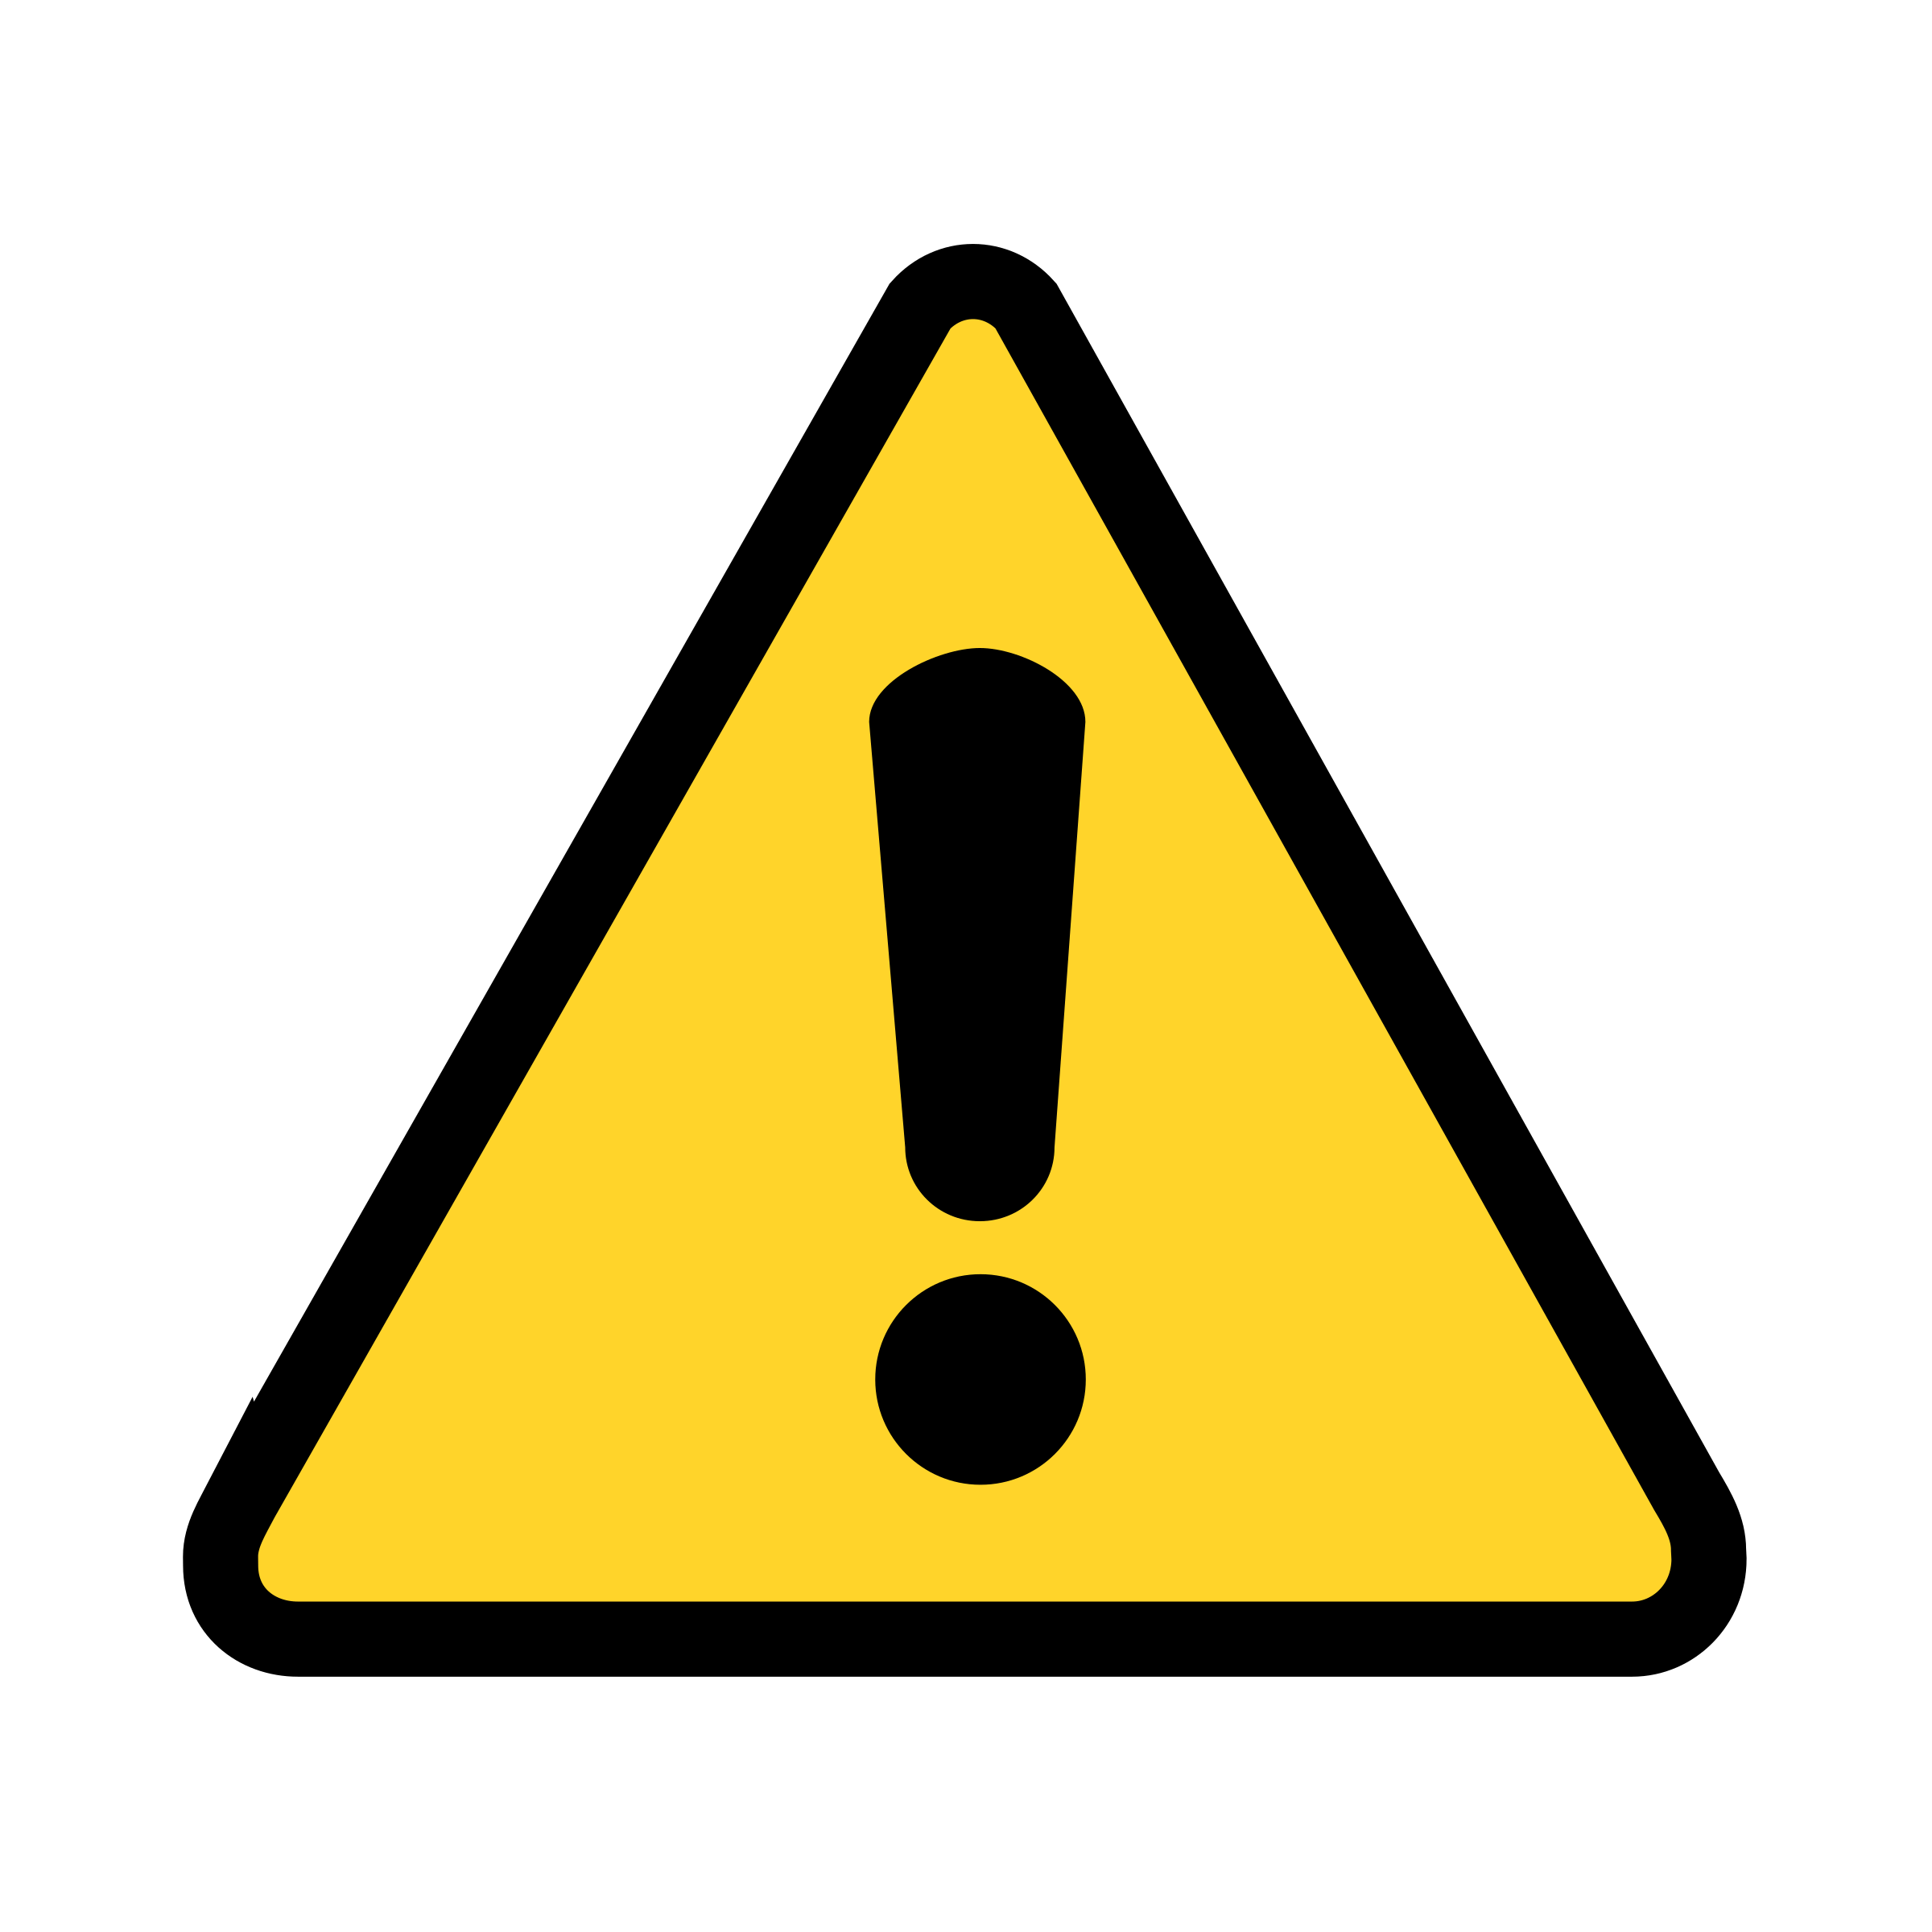 warning icon transparent png stickpng